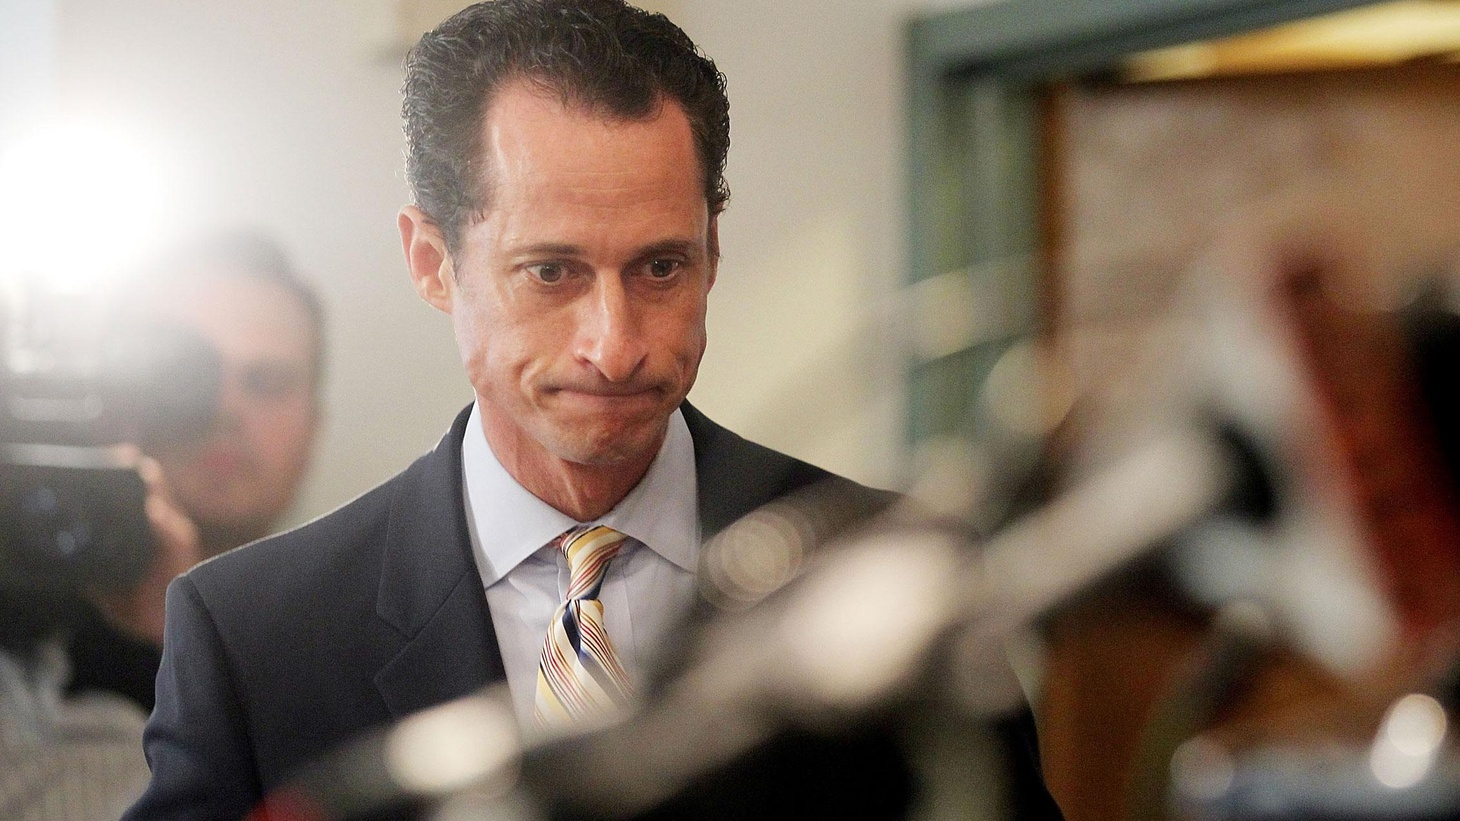 It's been a week saturated with the misbehavior and the fate of Anthony Weiner. Today, we talk about the unpredictable dynamics of political scandal...